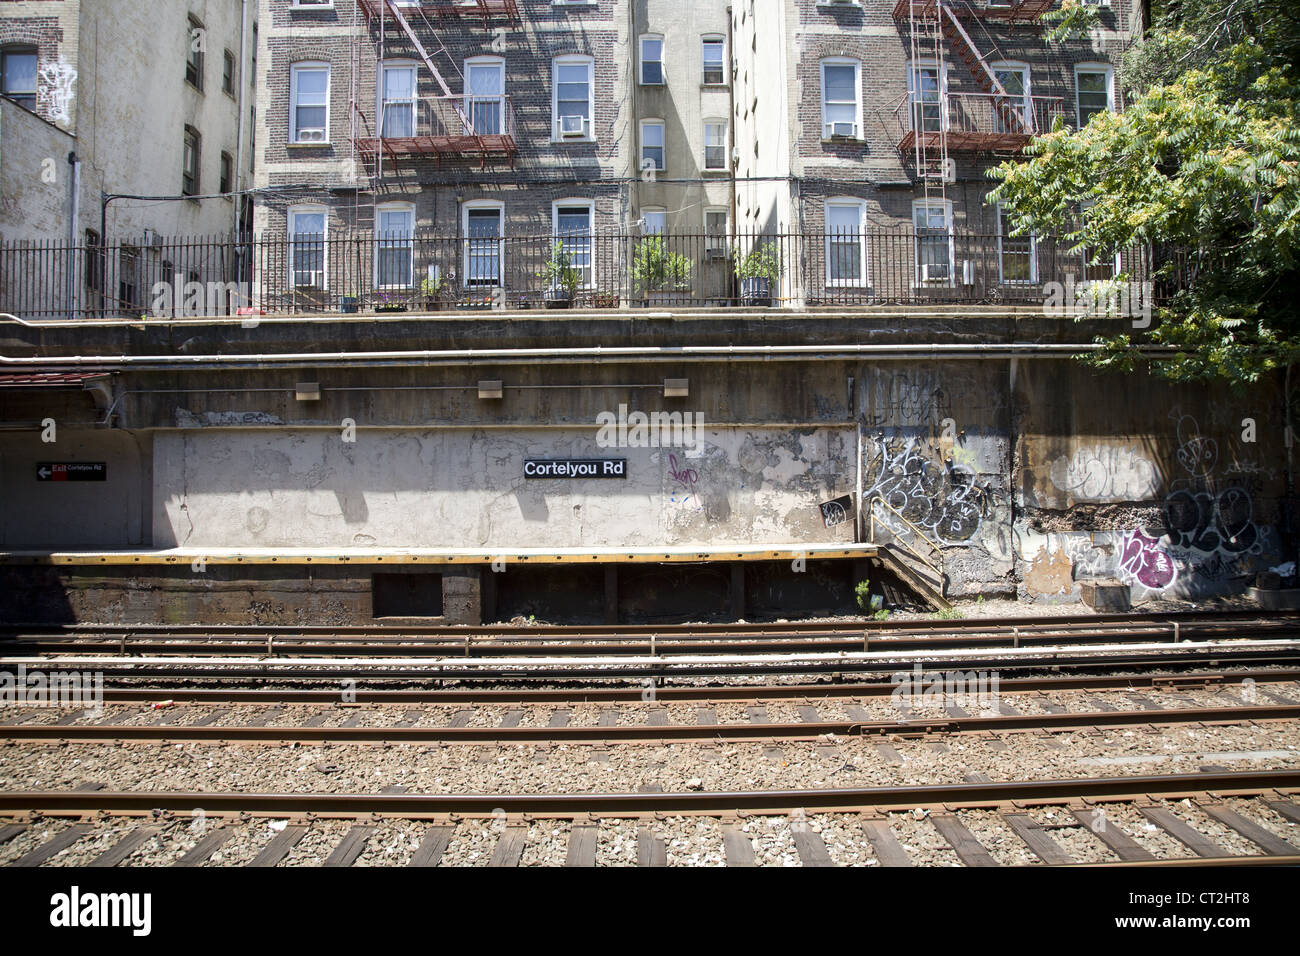 Open air subway station at Cortelyou Road along the F line in Brooklyn, NY. Stock Photo